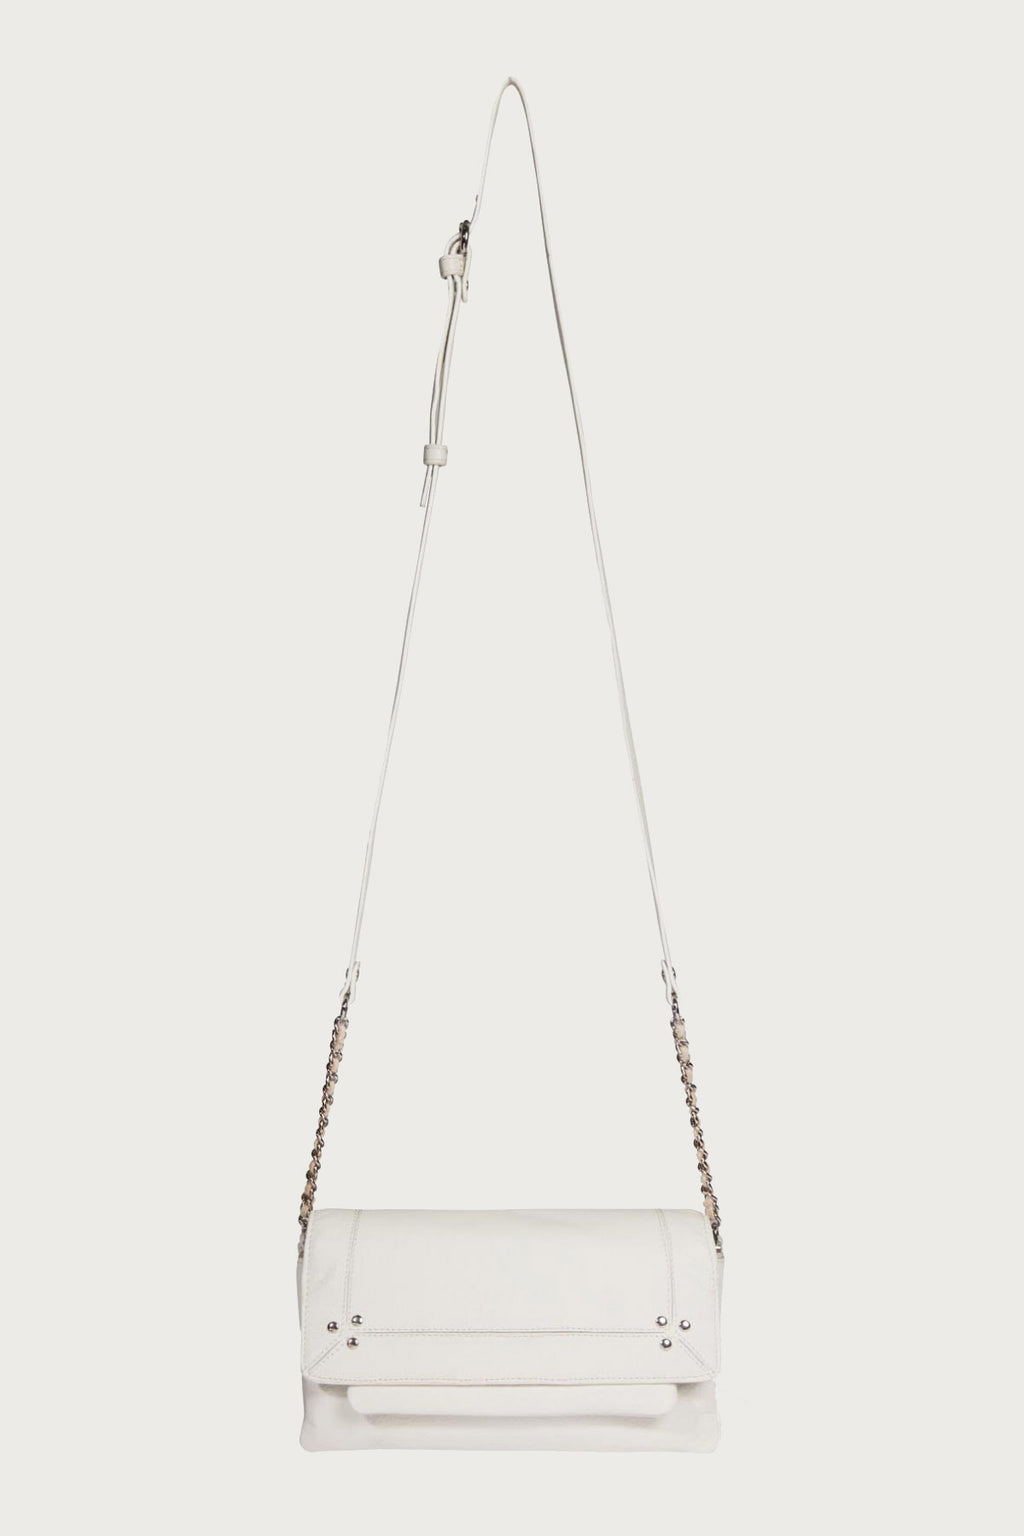 Charly Handbag in Blanc